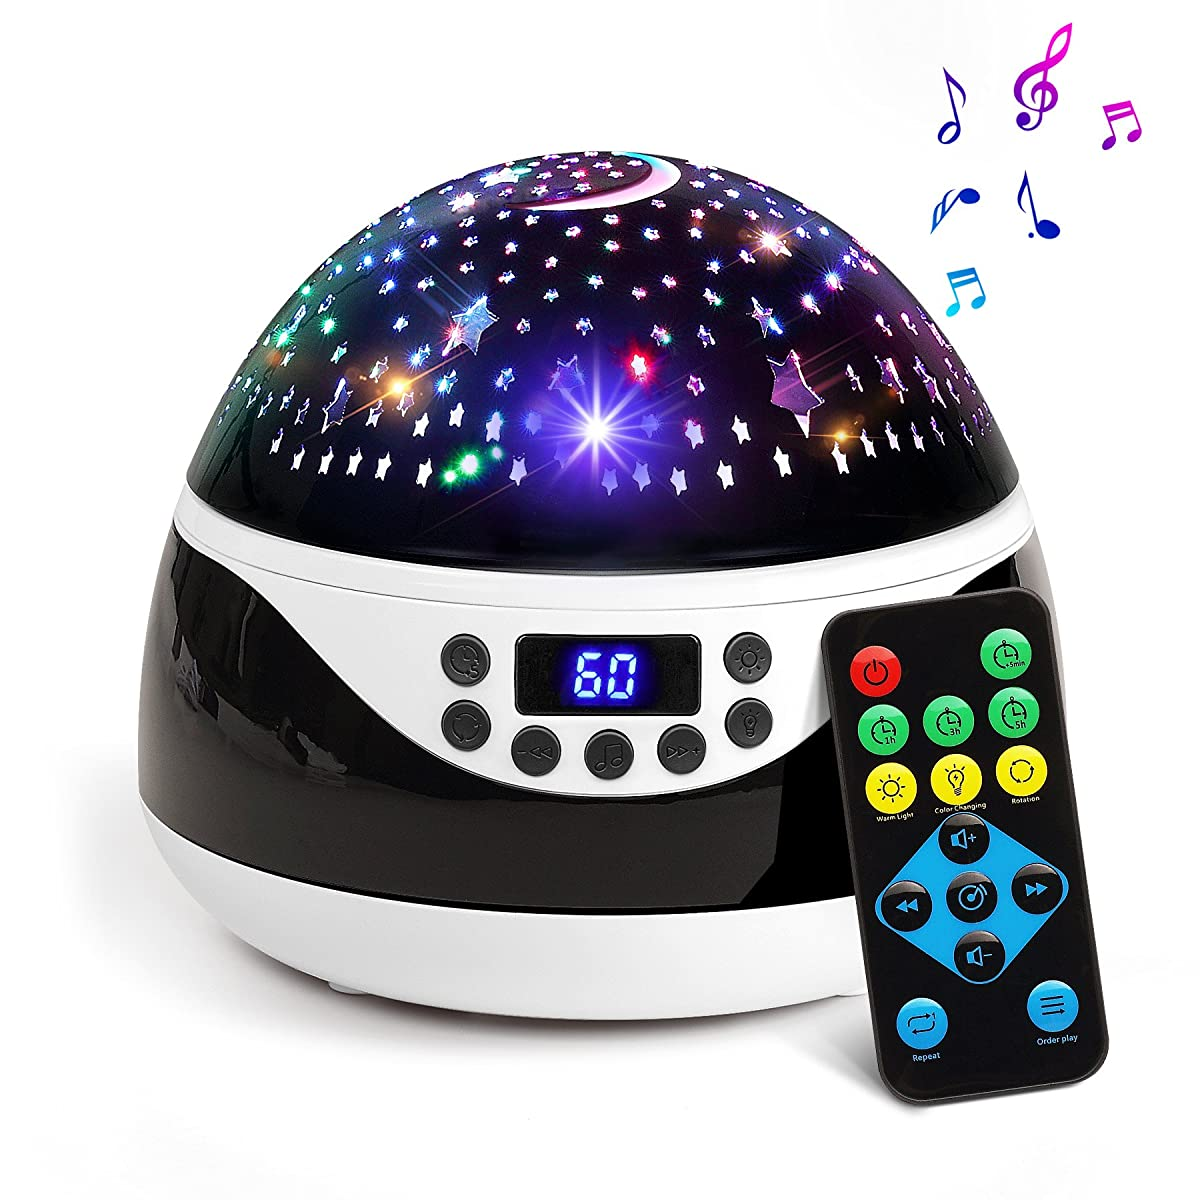 2018 NEWEST Baby Night Light, AnanBros Remote Control Star Projector with Timer Music Player, Rotating Constellation Night Light 9 Color Options, Best Night Lights for kids Adults and Nursery Decor